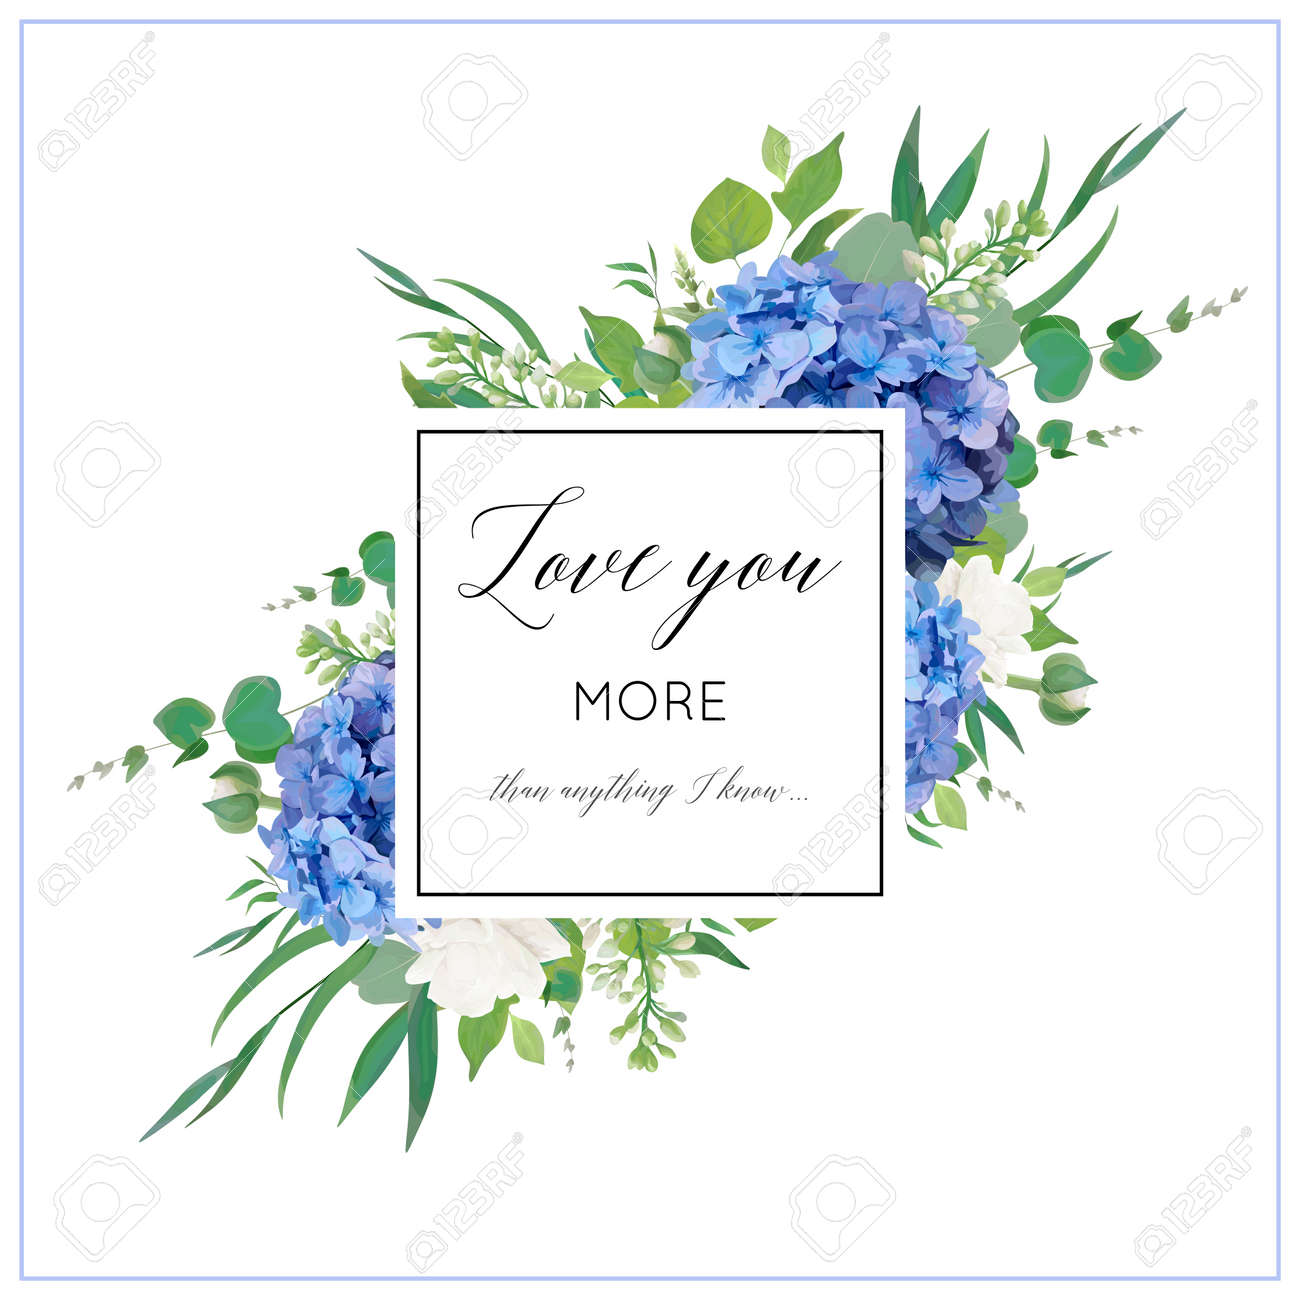 Vector floral card with elegant bouquet of blue hydrangea flowers, white garden roses, green eucalyptus, lilac branches, greenery leaves berries & square copy space. Wedding invite, greeting - 97729461